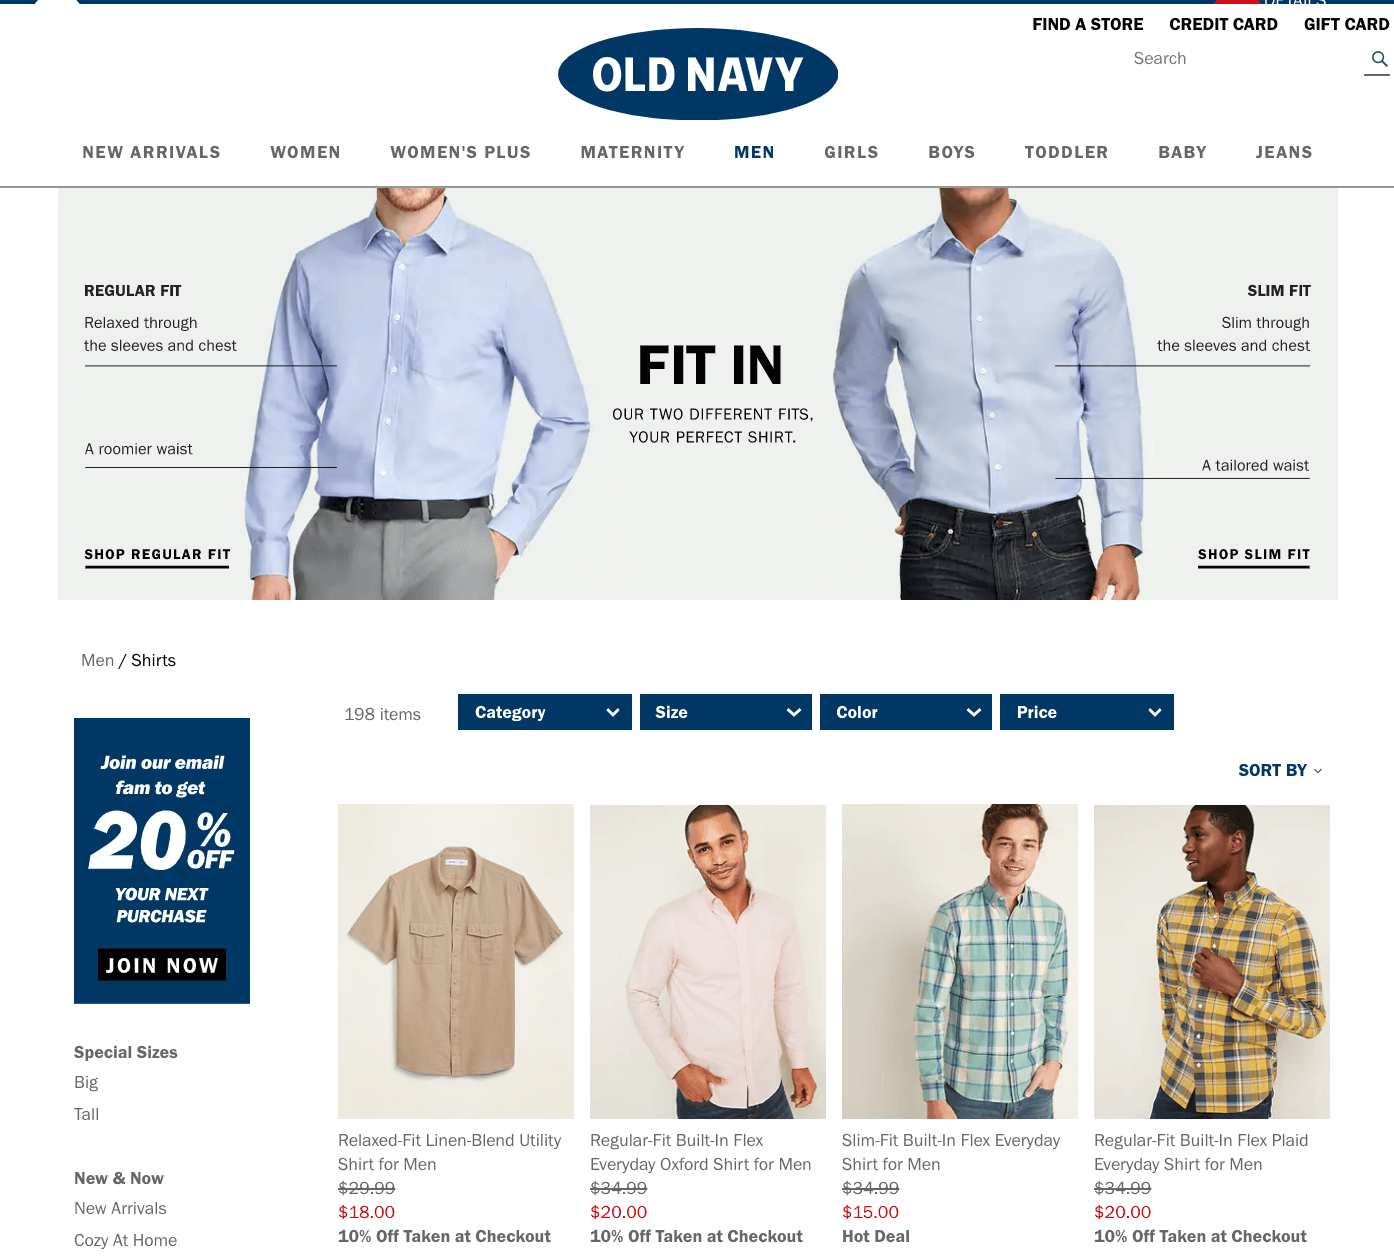 old navy collection image description